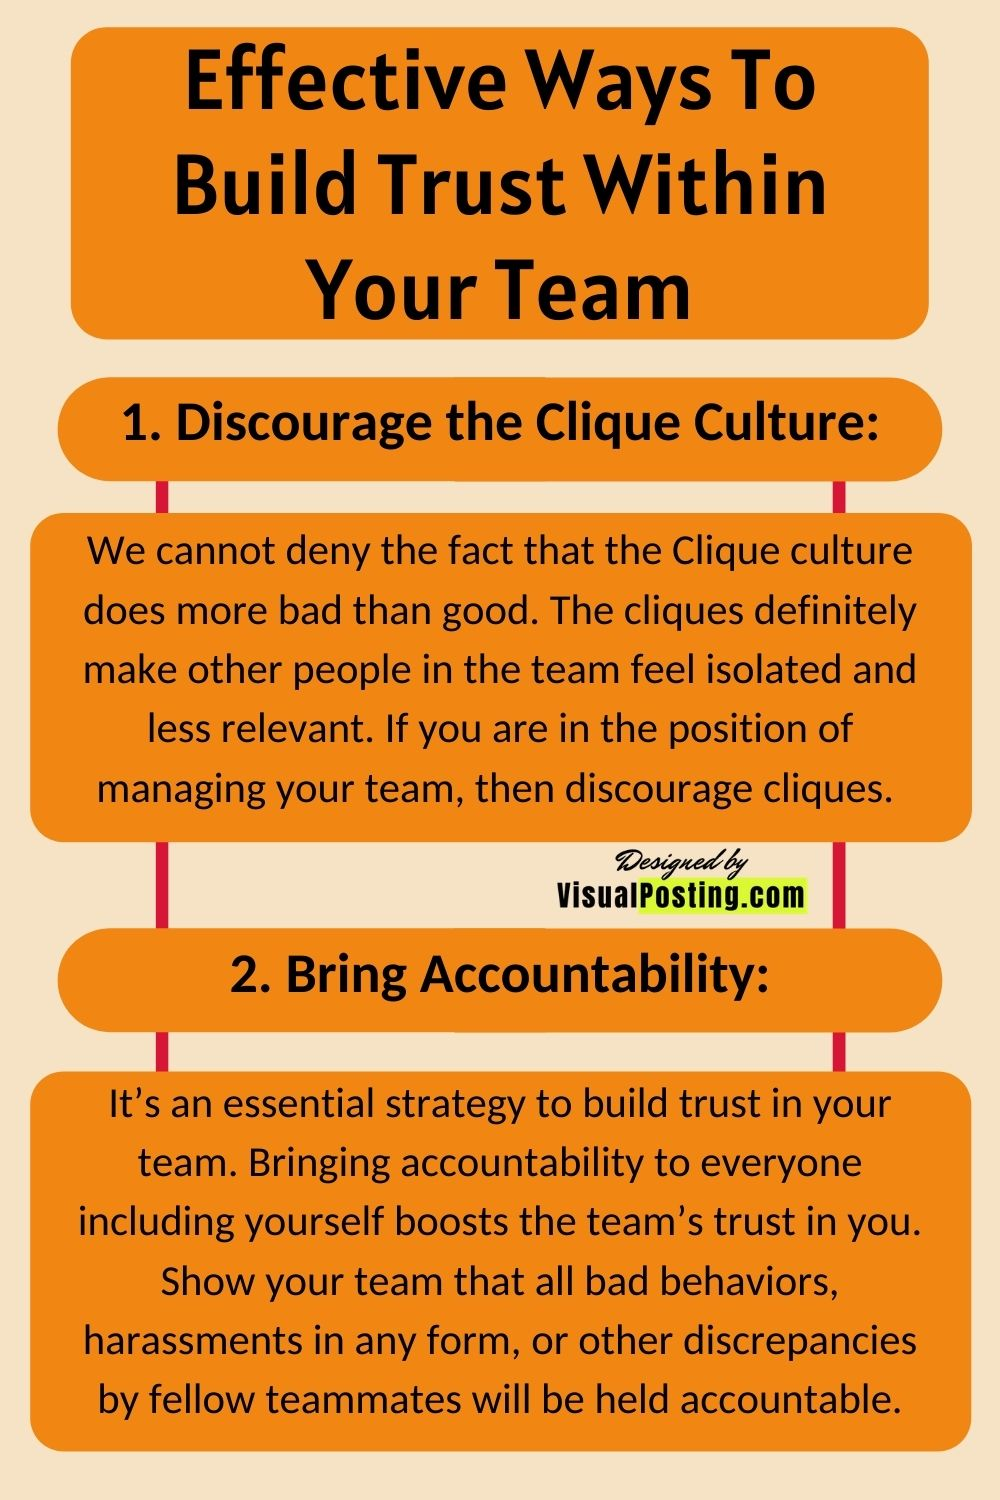 Top 4 Effective Ways To Build Trust Within Your Team.jpg